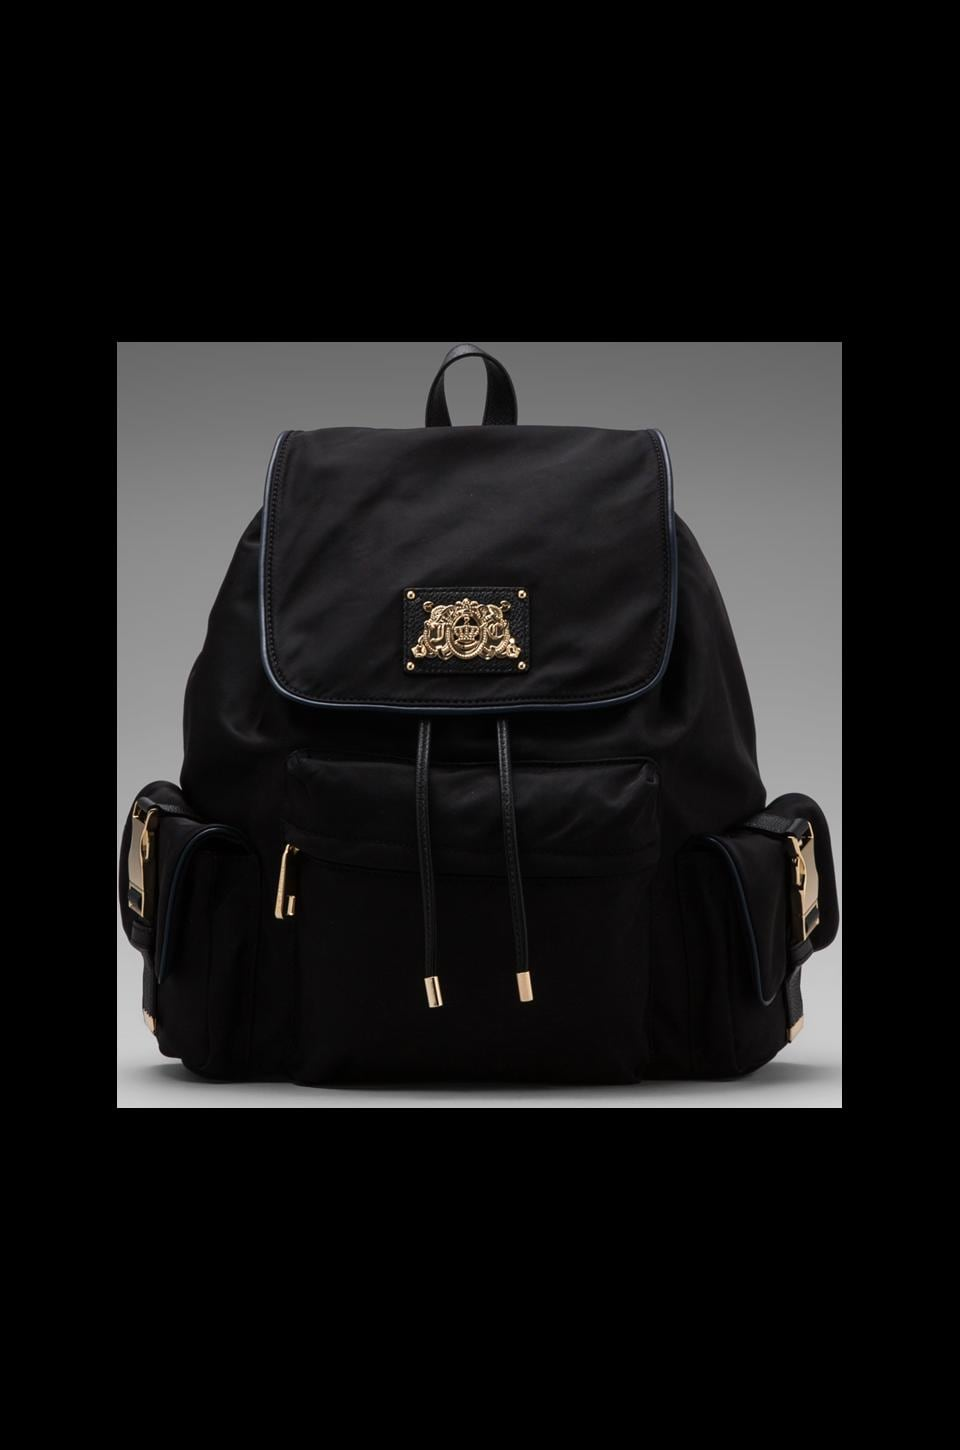 Juicy Couture Penny Nylon Backpack in Black